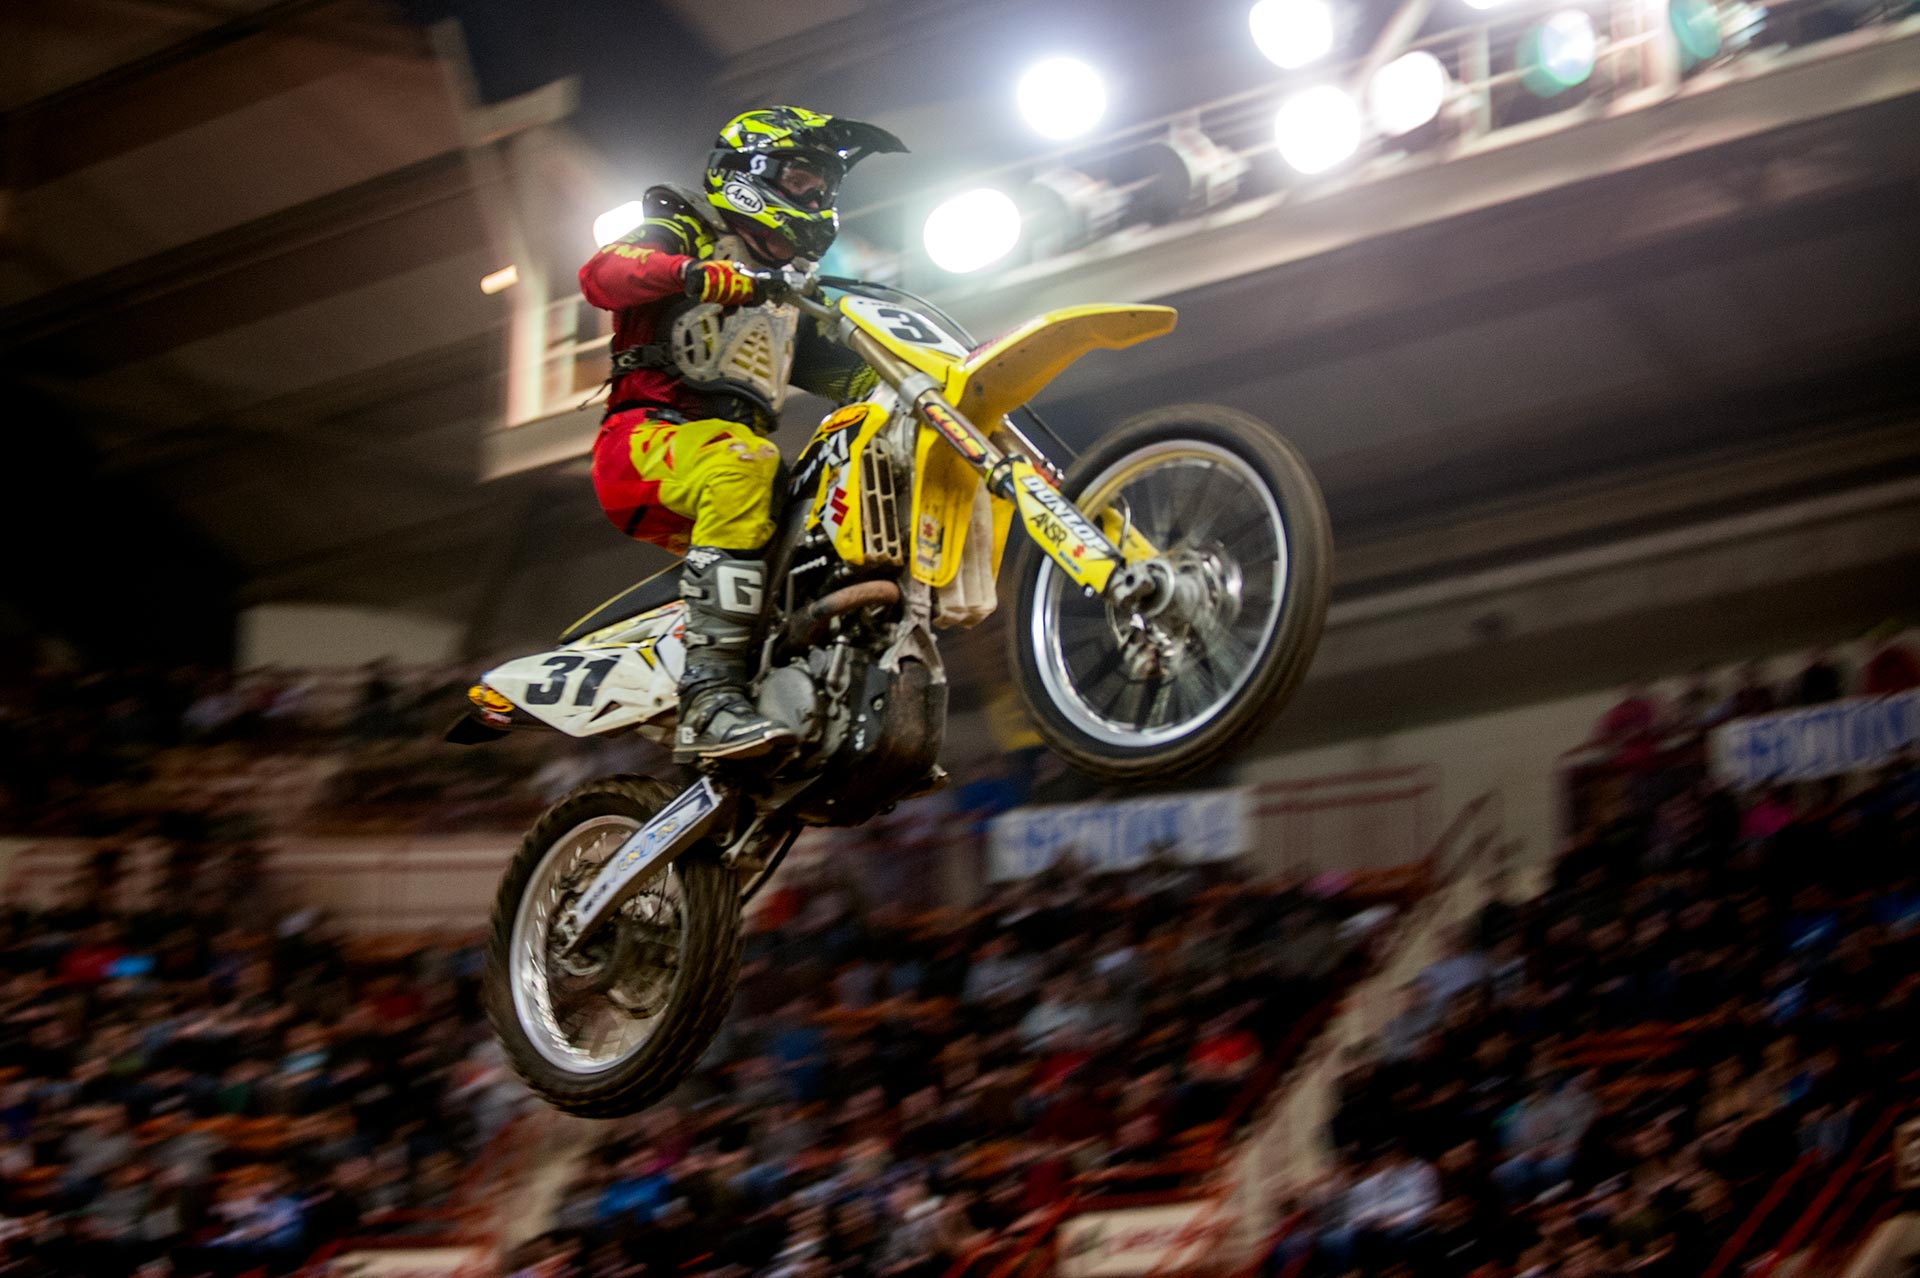 A bike flying through the air at the arenacross races.